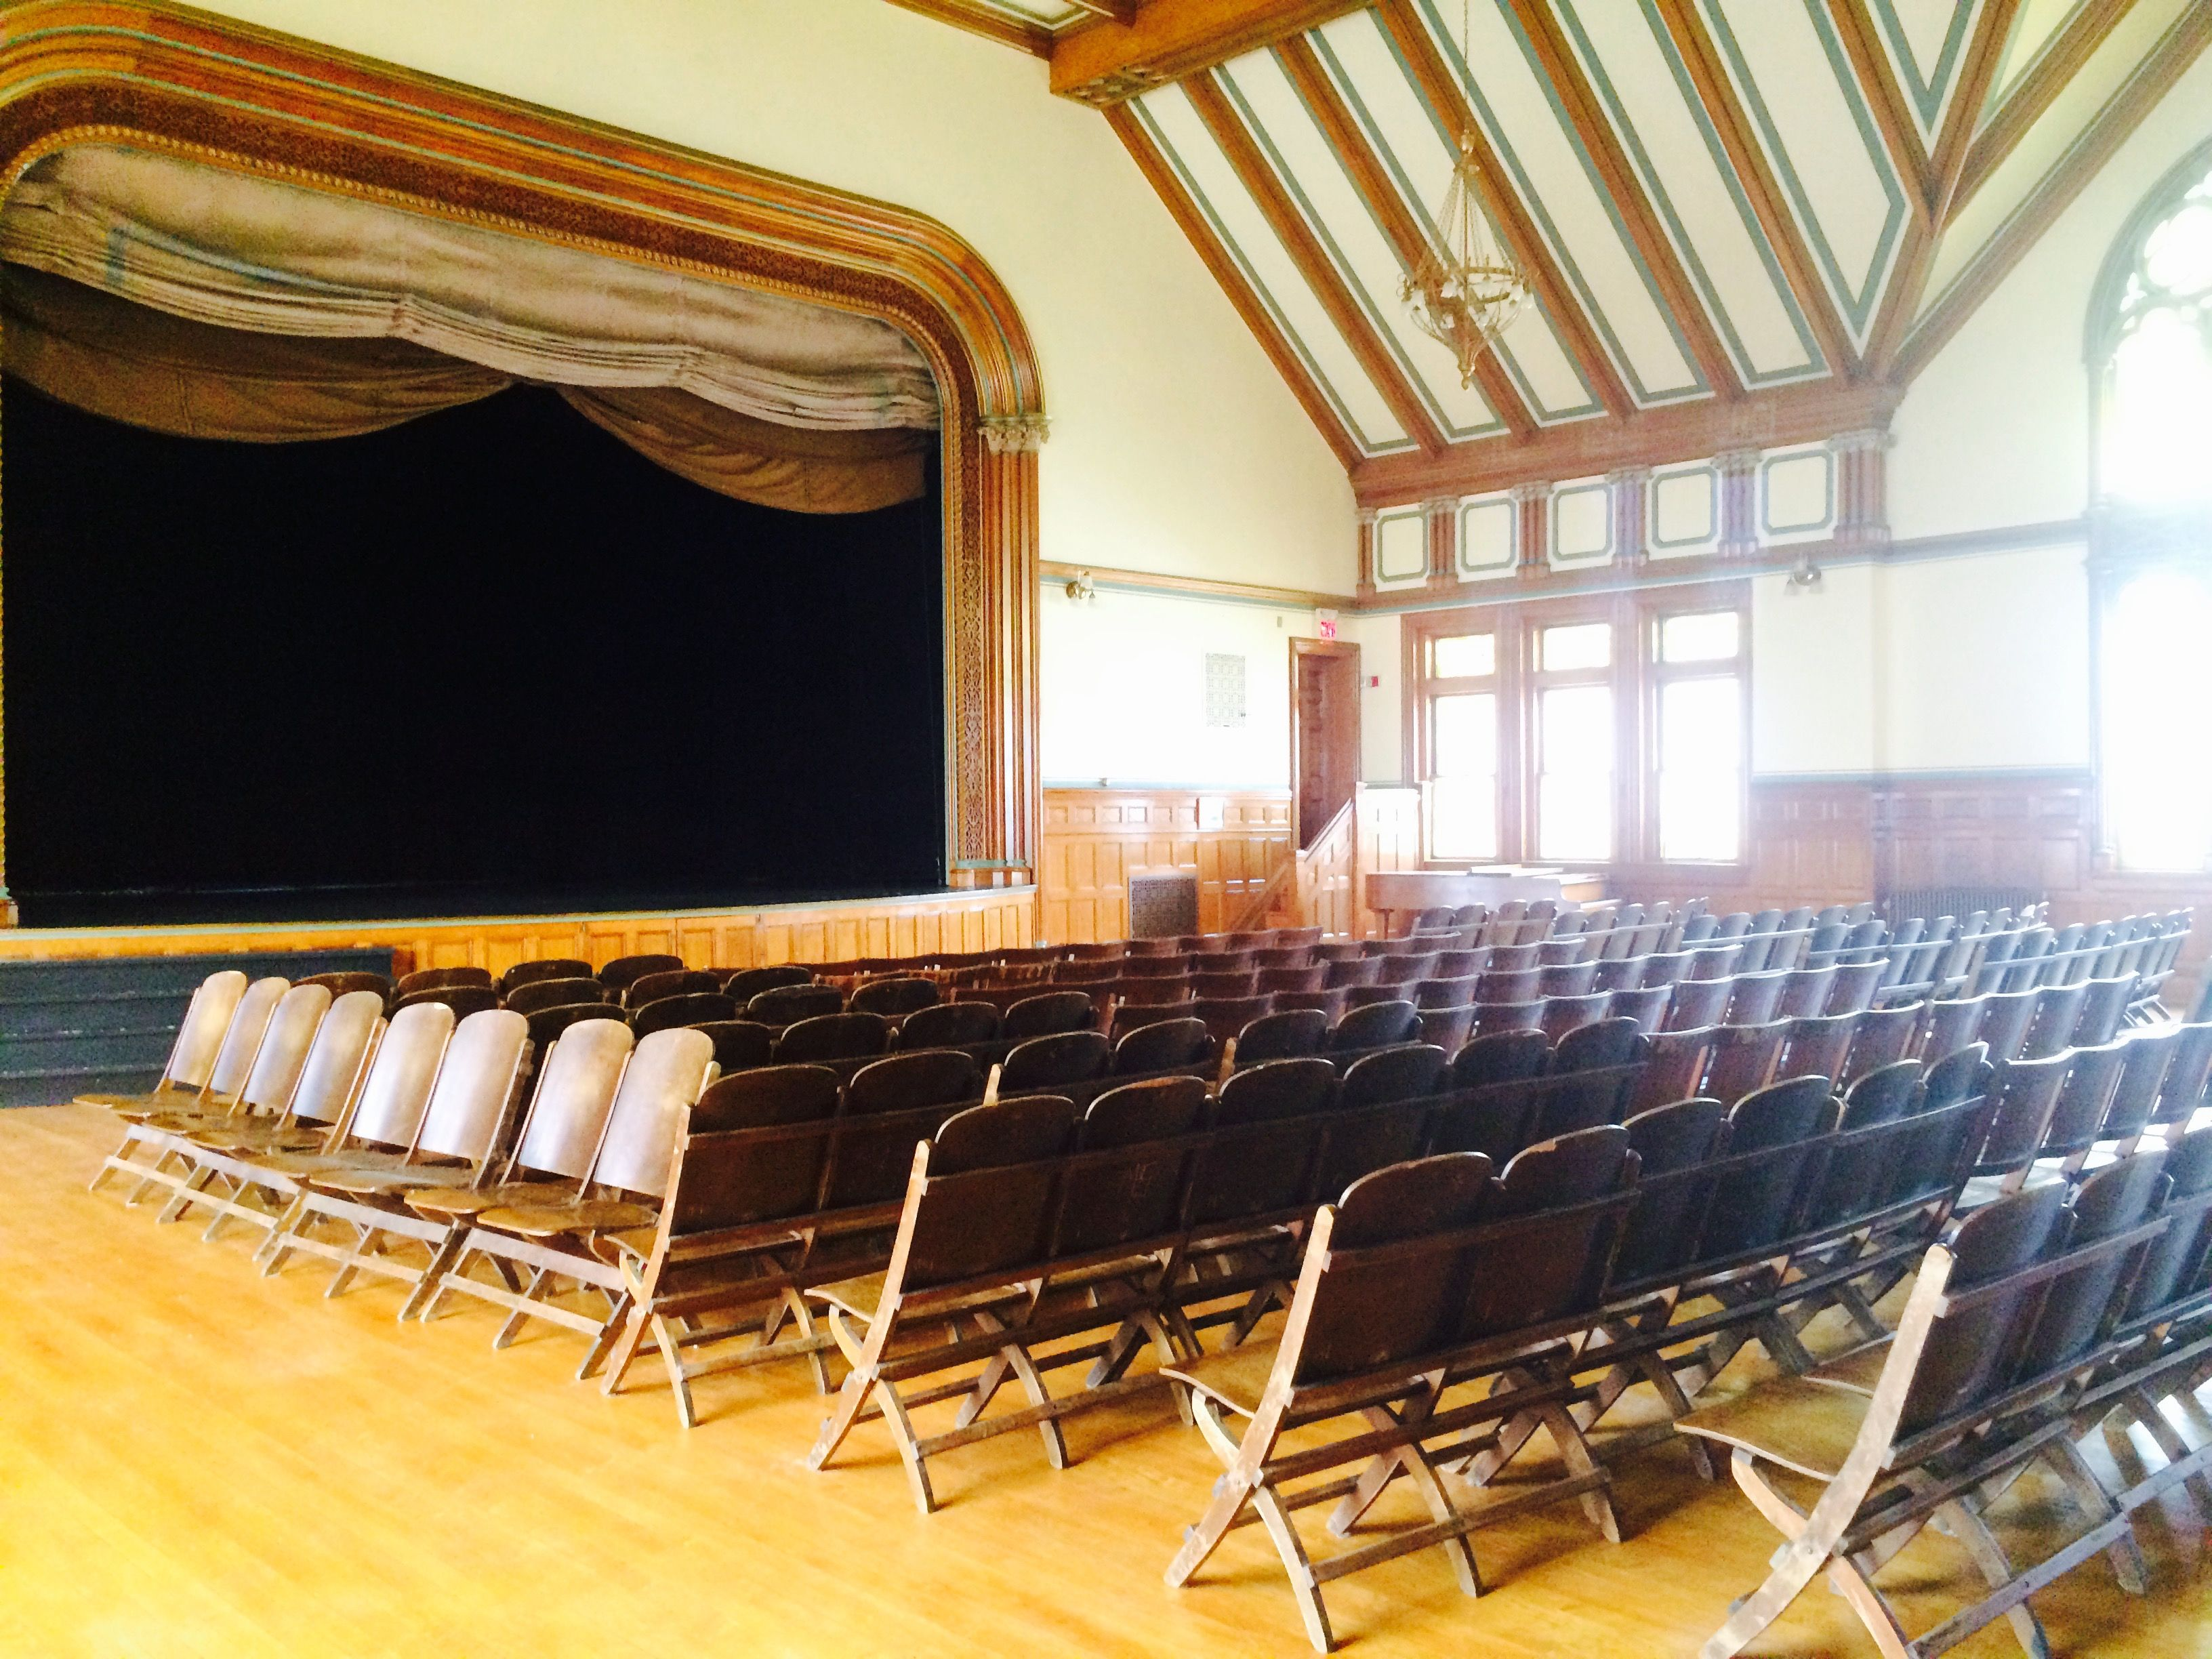 Les Halles Restaurant Valence Stage Auditorium 2nd Floor Of Fairhaven Town Hall Many Hollywood